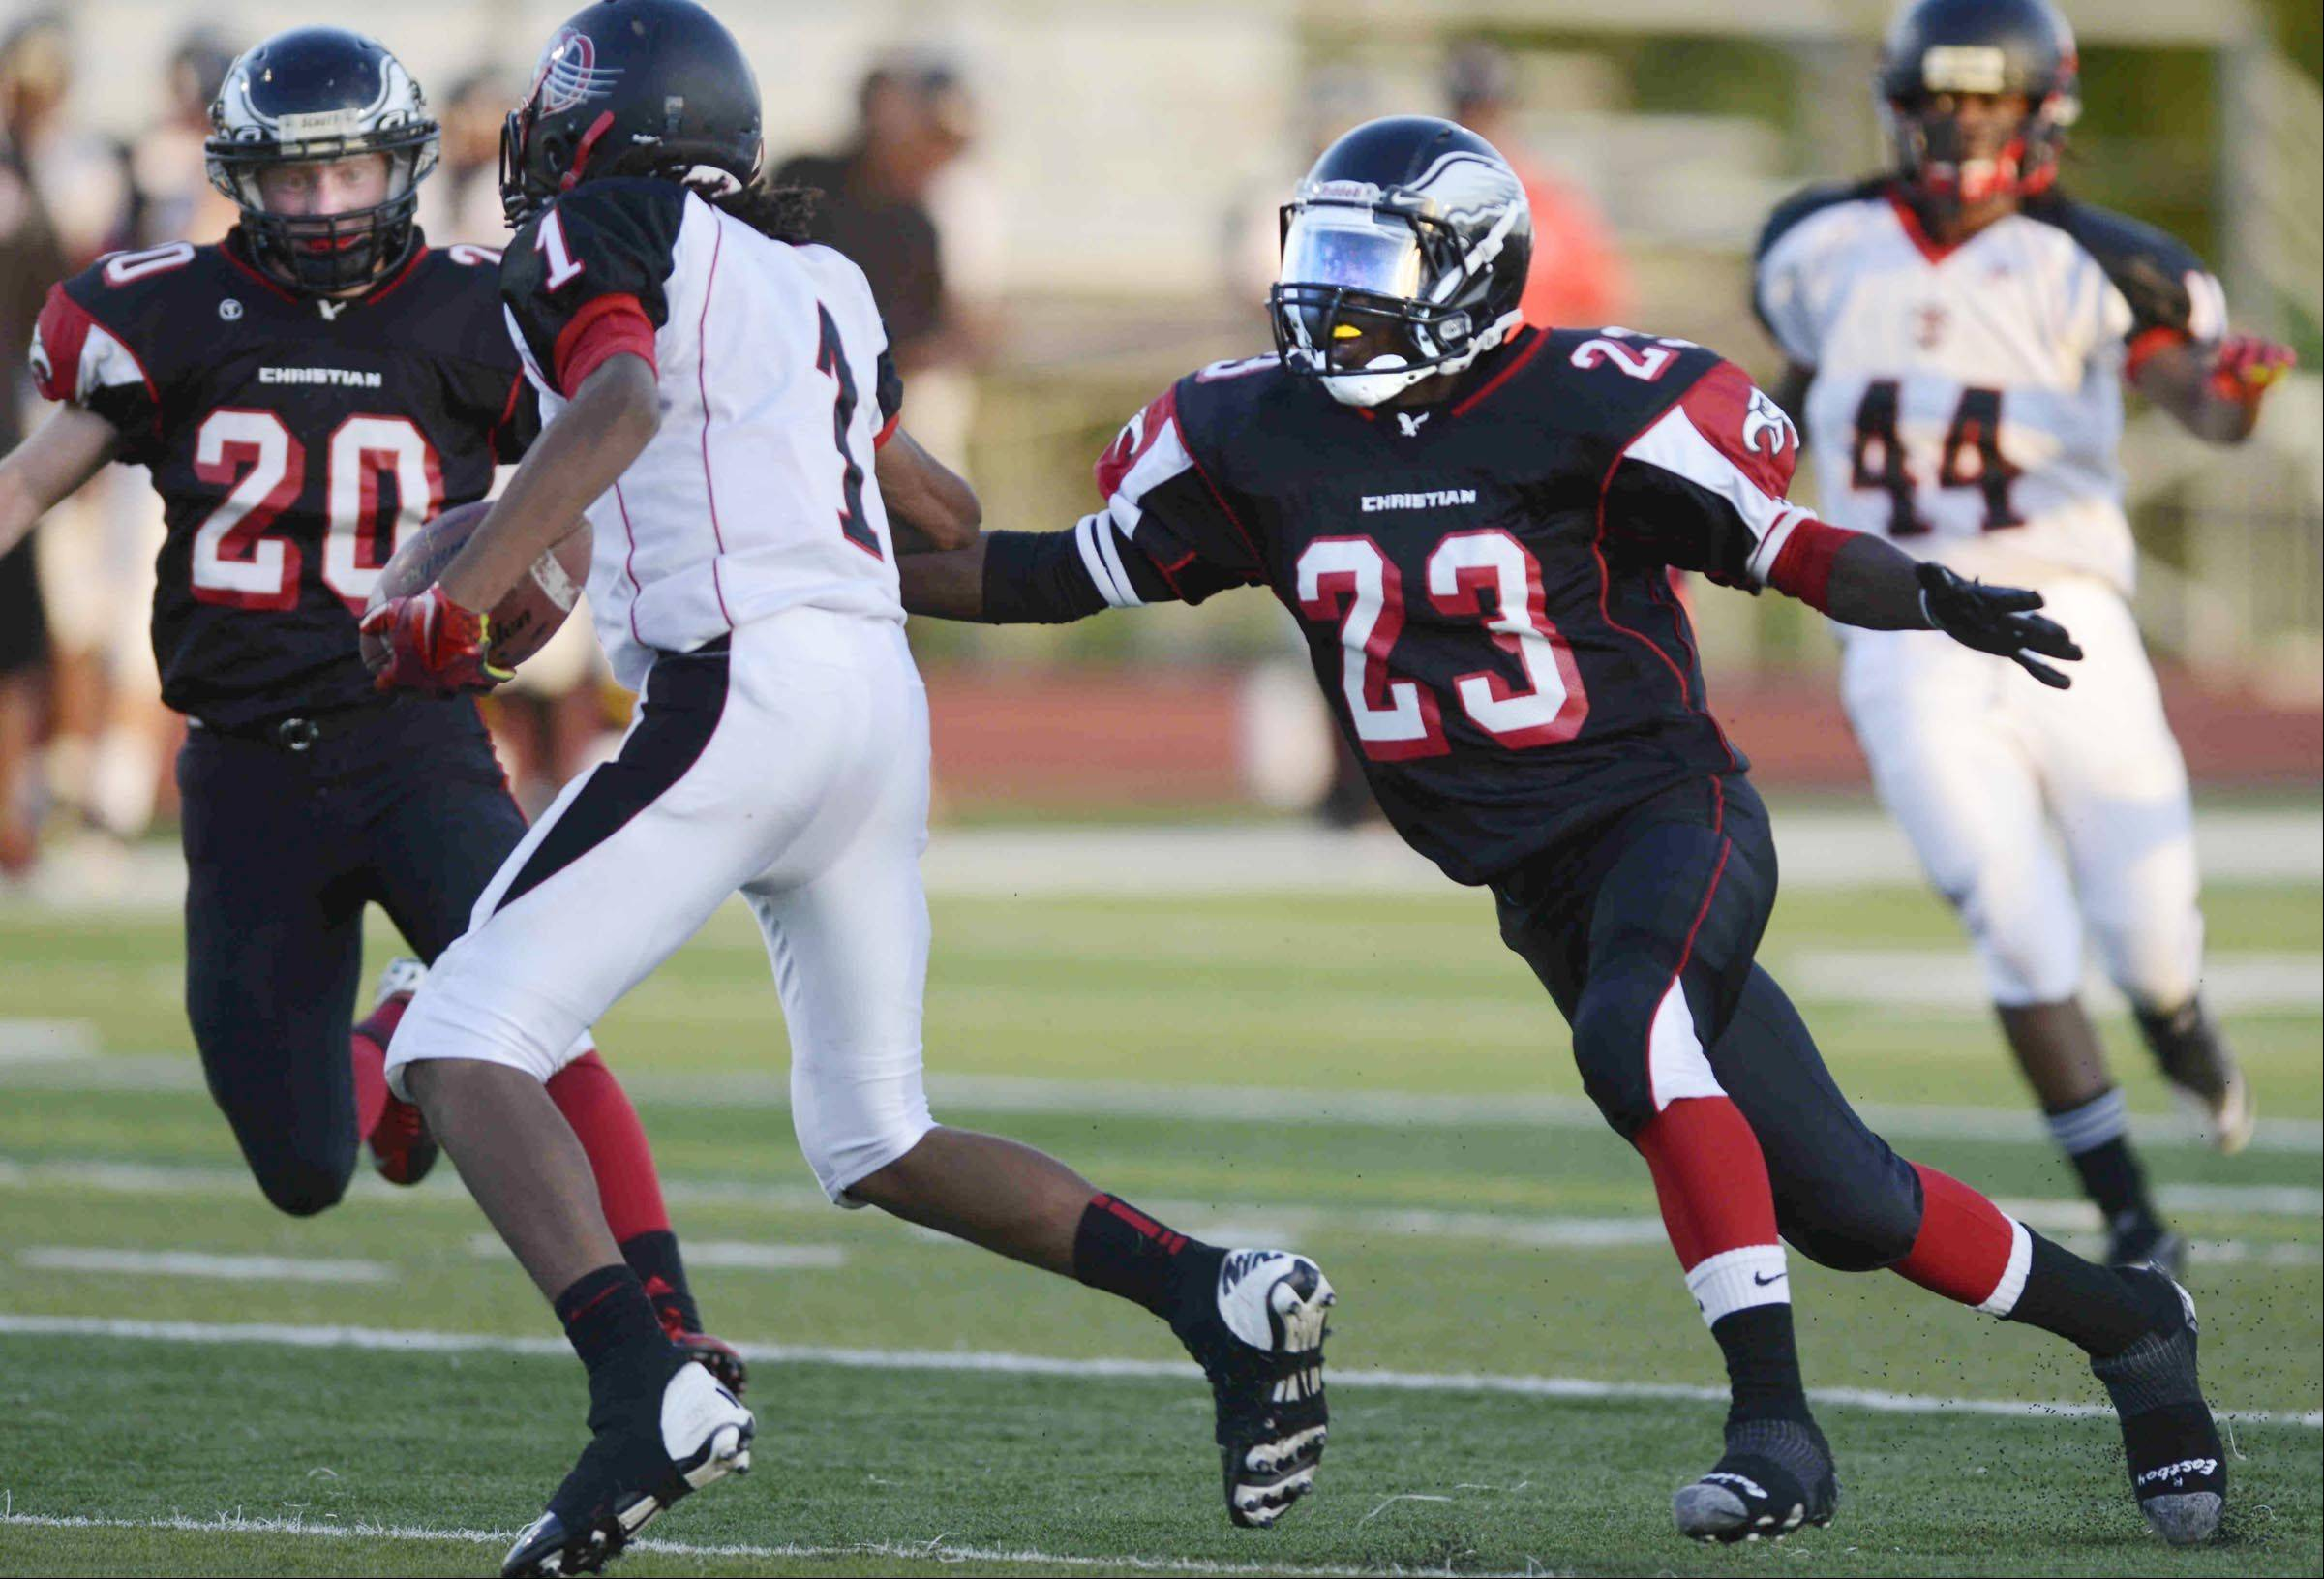 Week 1 - Images from the Aurora Christian vs. DuSable football game Tuesday, September 3, 2013.